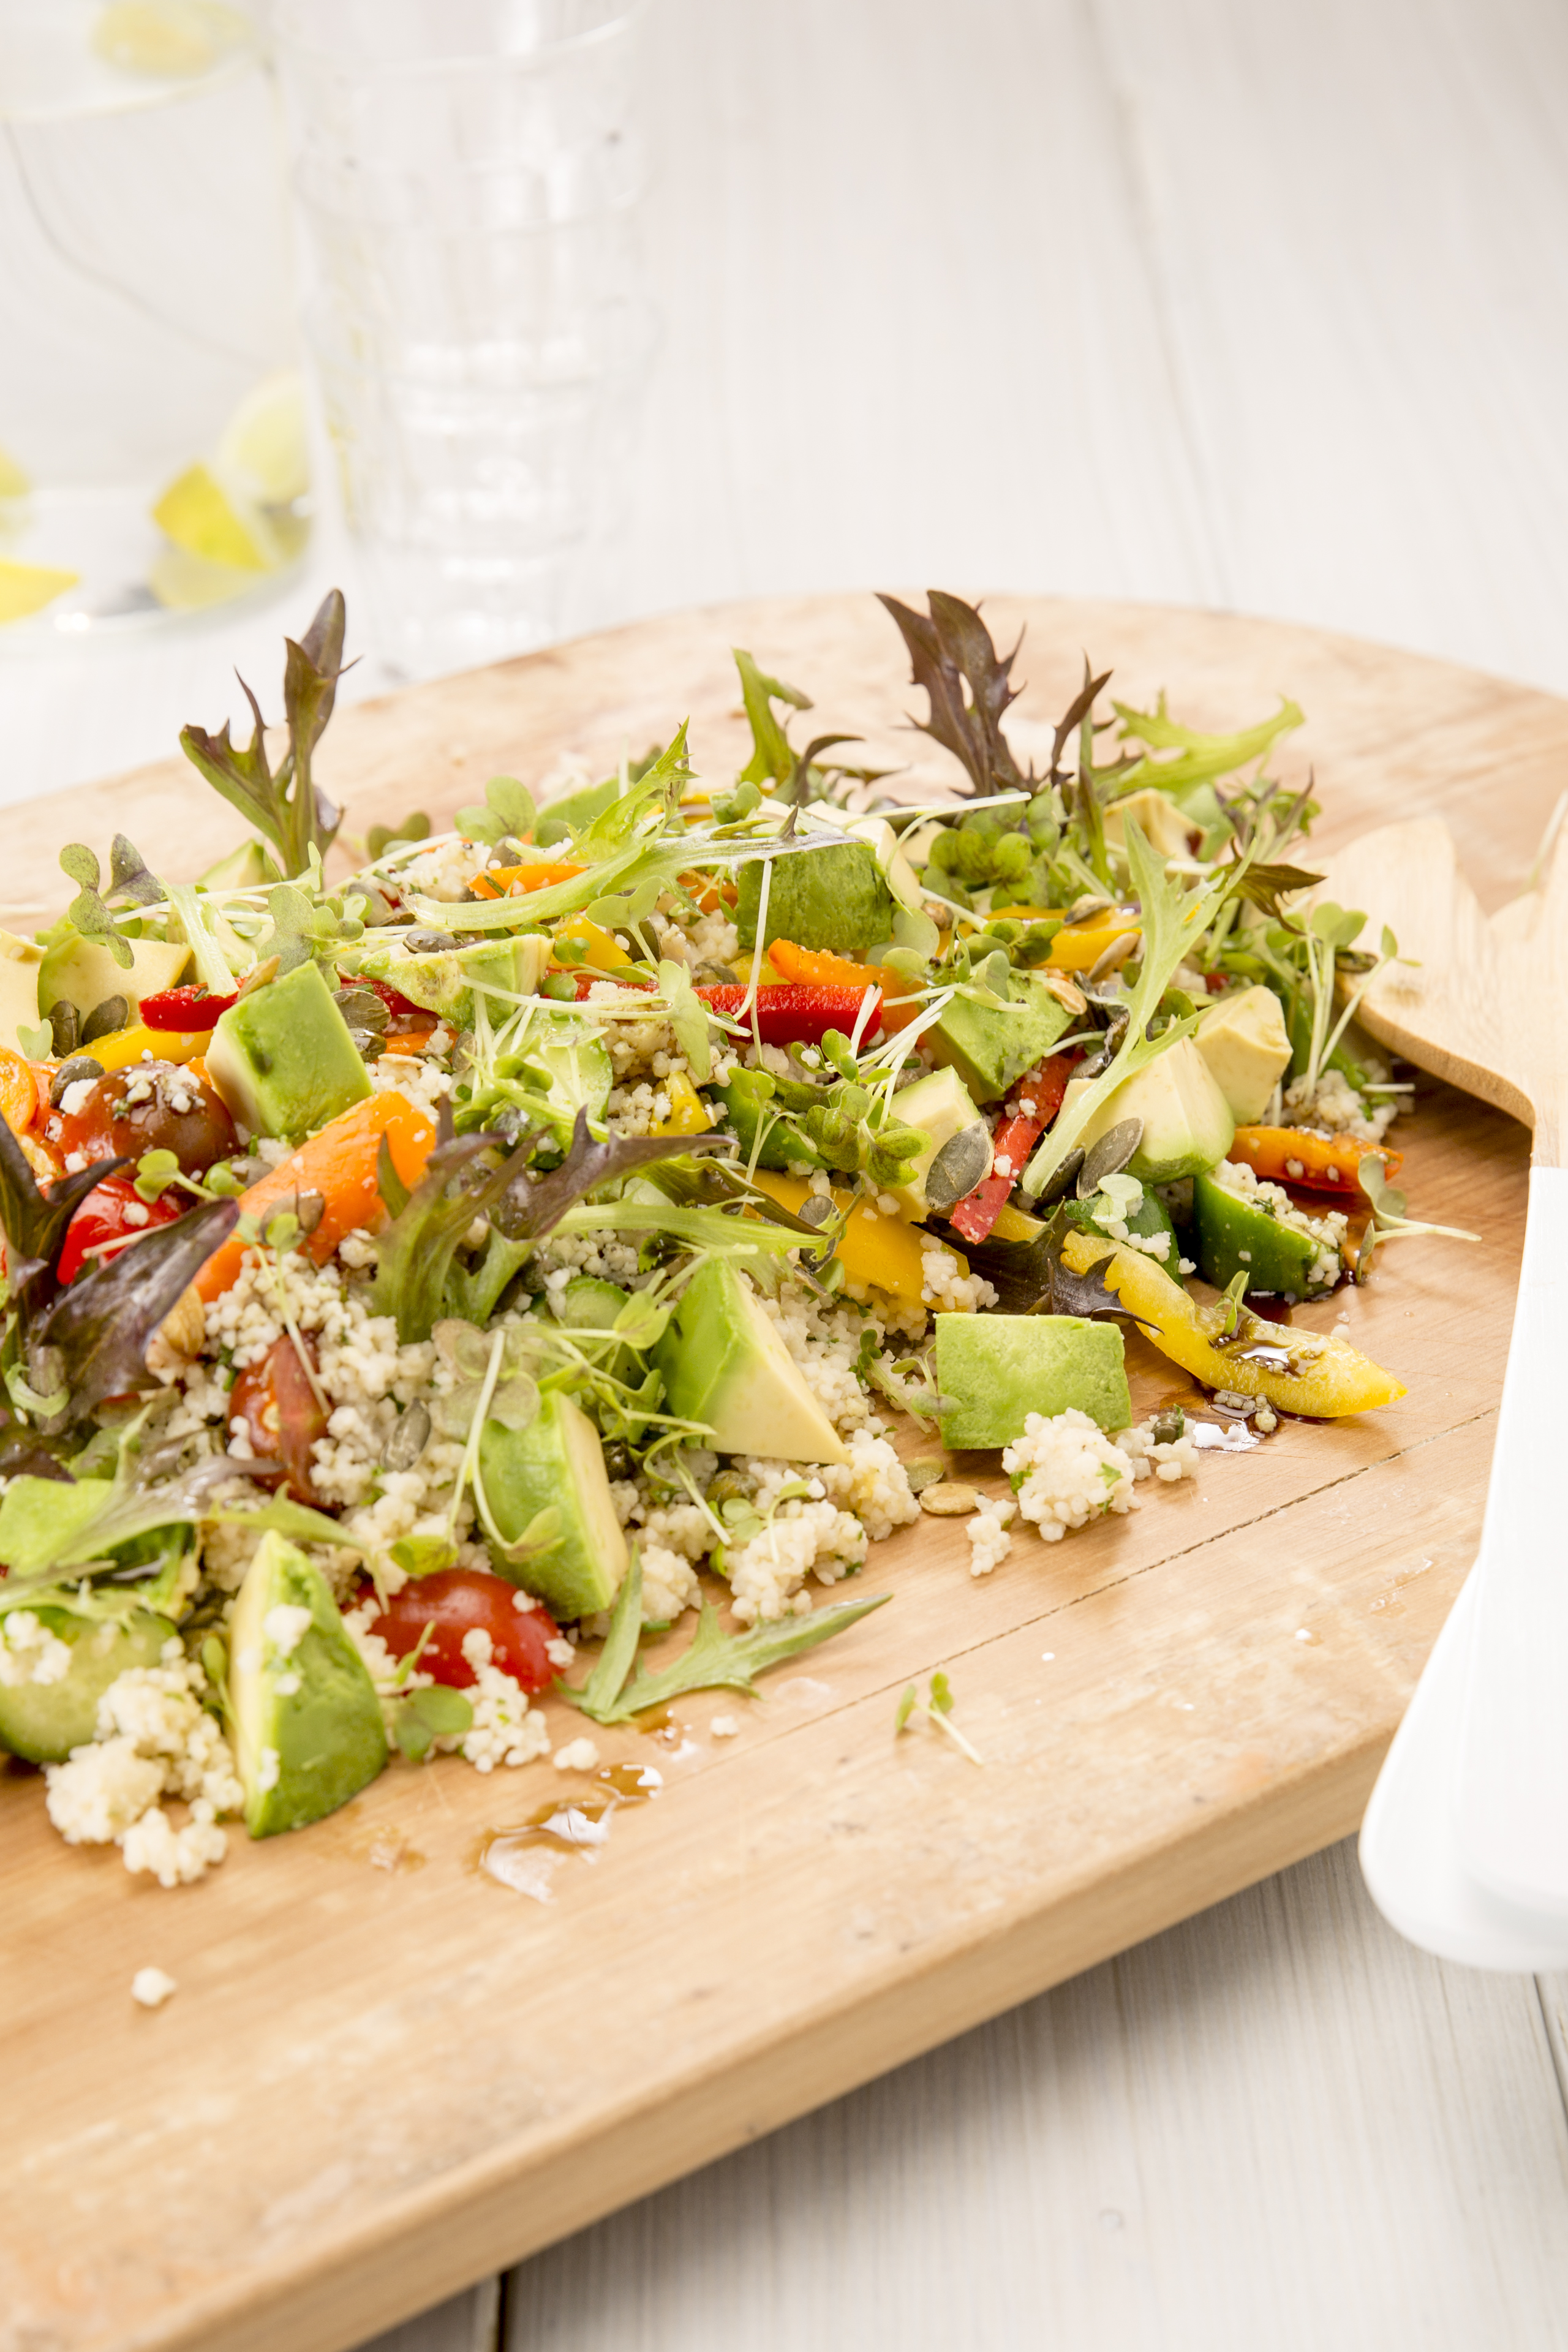 https://www.lovemysalad.com/sites/default/files/couscous_salade.jpg